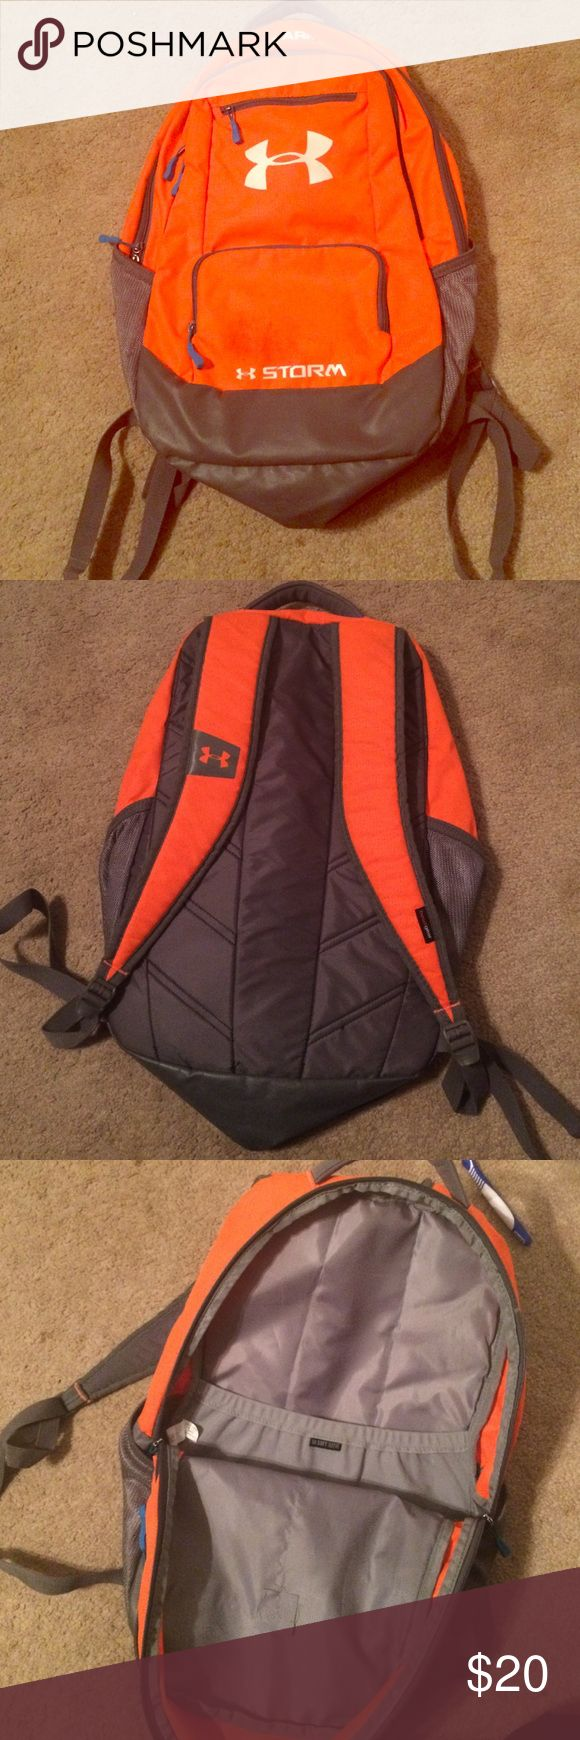 Under armor heat gear, storm backpack Great condition worn only half a school year to small for what I was looking for! Also willing to trade or negotiate with the price! Under Armour Bags Backpacks